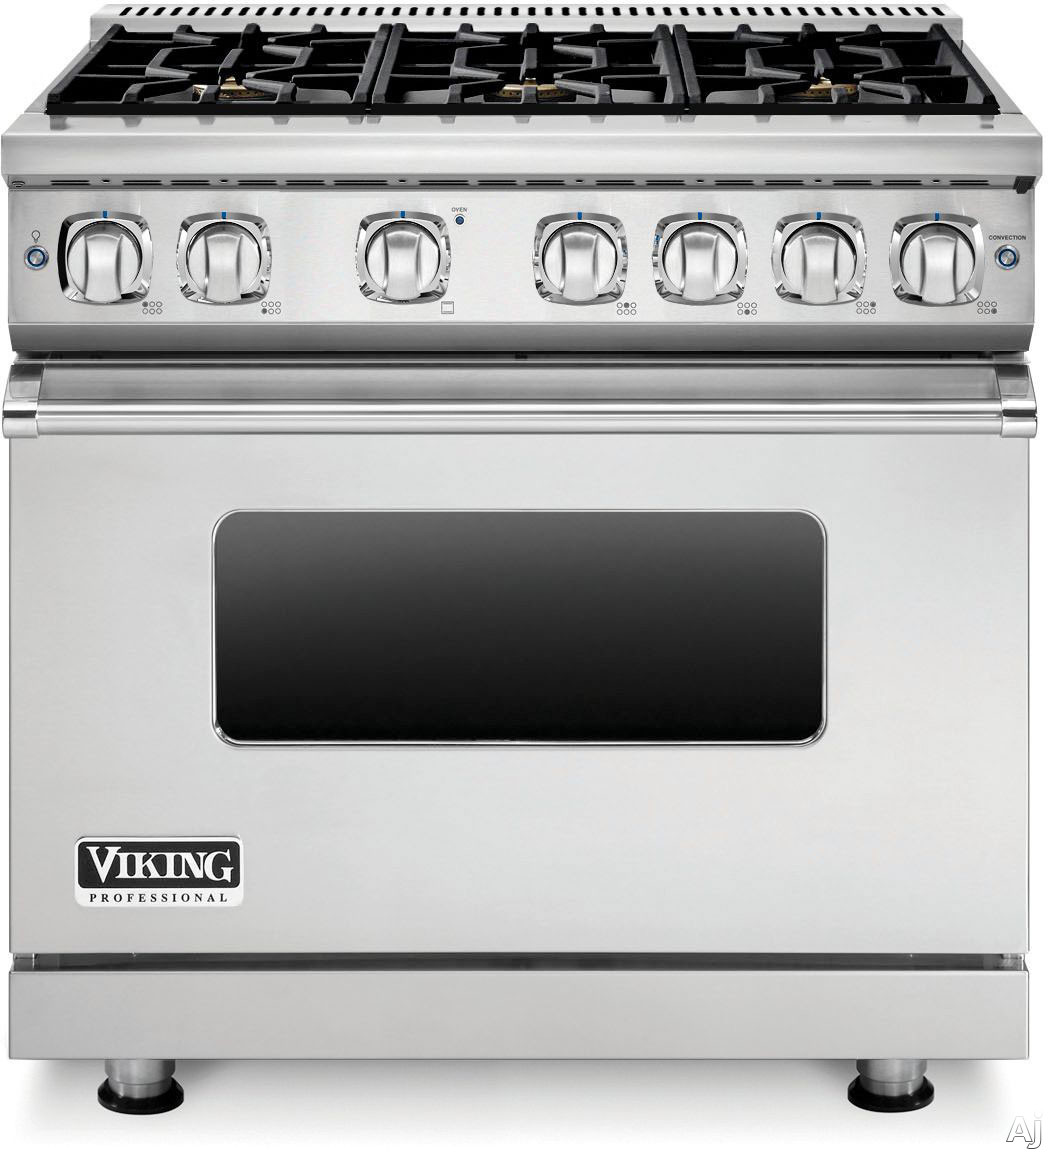 Viking Professional 7 Series VGR73616B 36 Inch Gas Range with 6 Sealed Burners, 5.1 cu. ft. Proflow Convection Oven, VariSimmer Setting, Gourmet Glo Infrared Broiler, GentleClose Door, TruGlide Full Extension Racks, Star-K Certified and SoftLit LED Contr